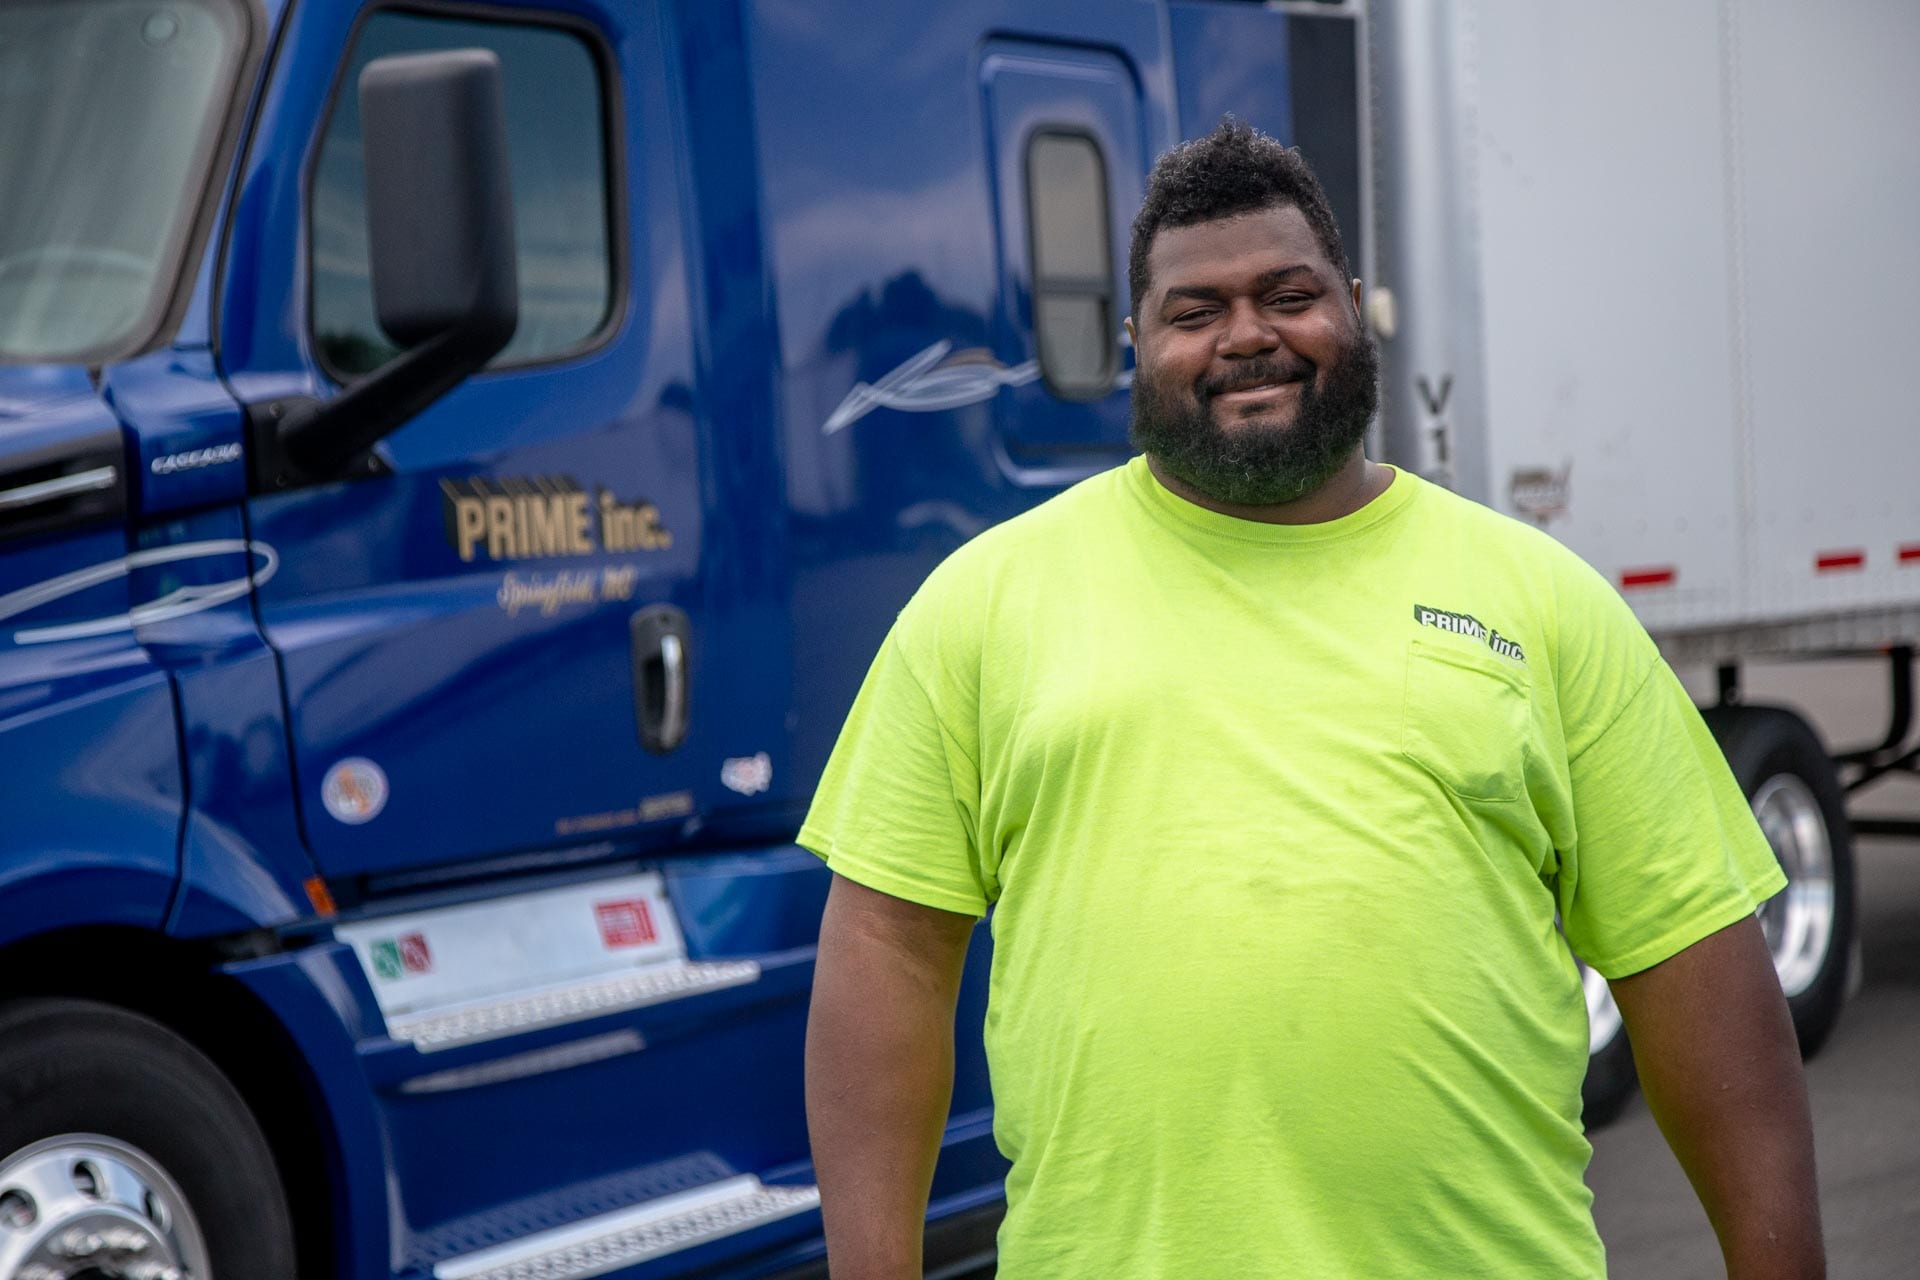 A Prime truck driver, wearing a safety yellow t-shirt, standing in front of a dark blue semi-truck.